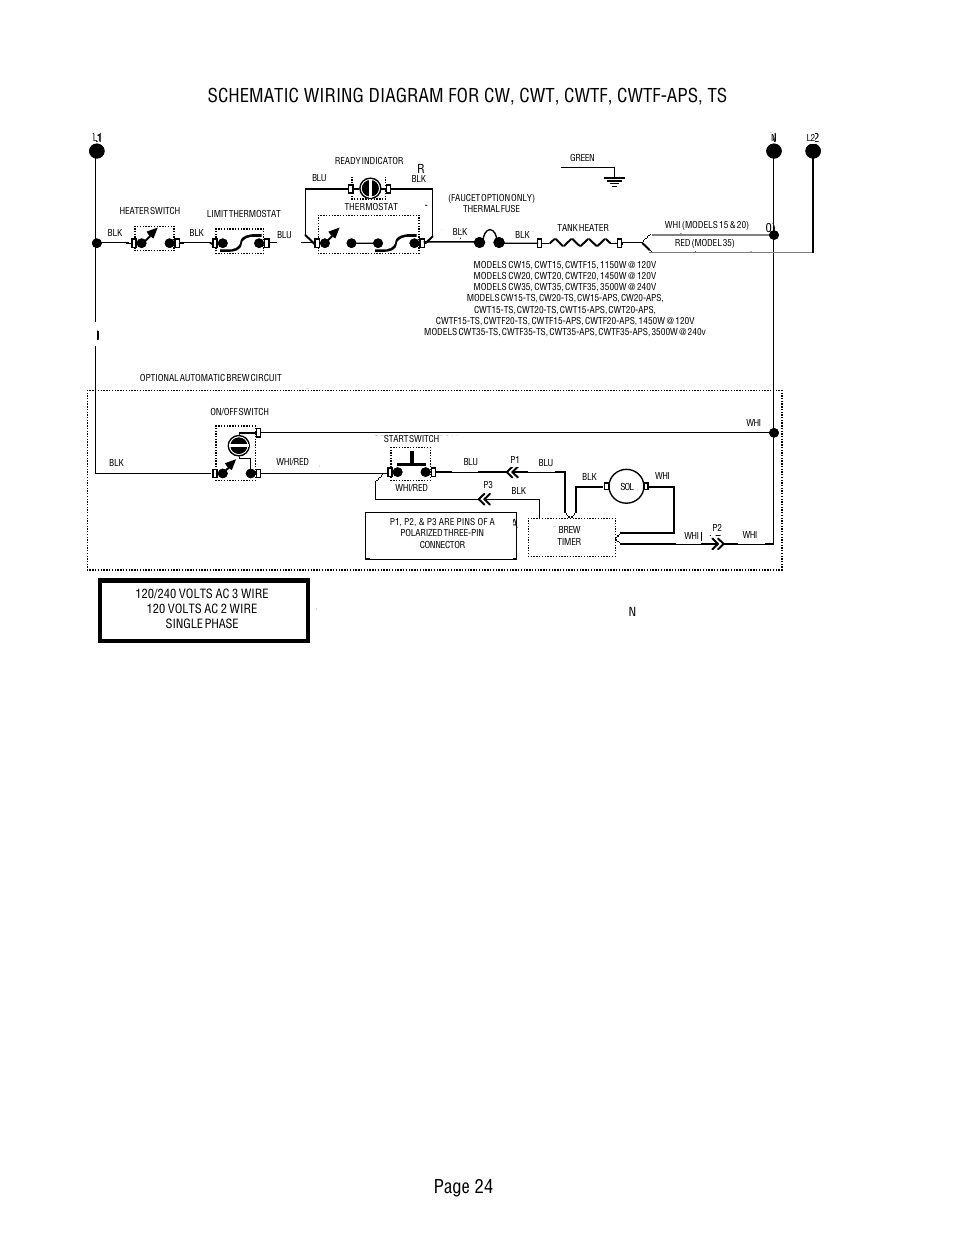 Bunn Switch Wiring Diagram Library Schematic For Coffee Maker Likewise Keurig 19 Images